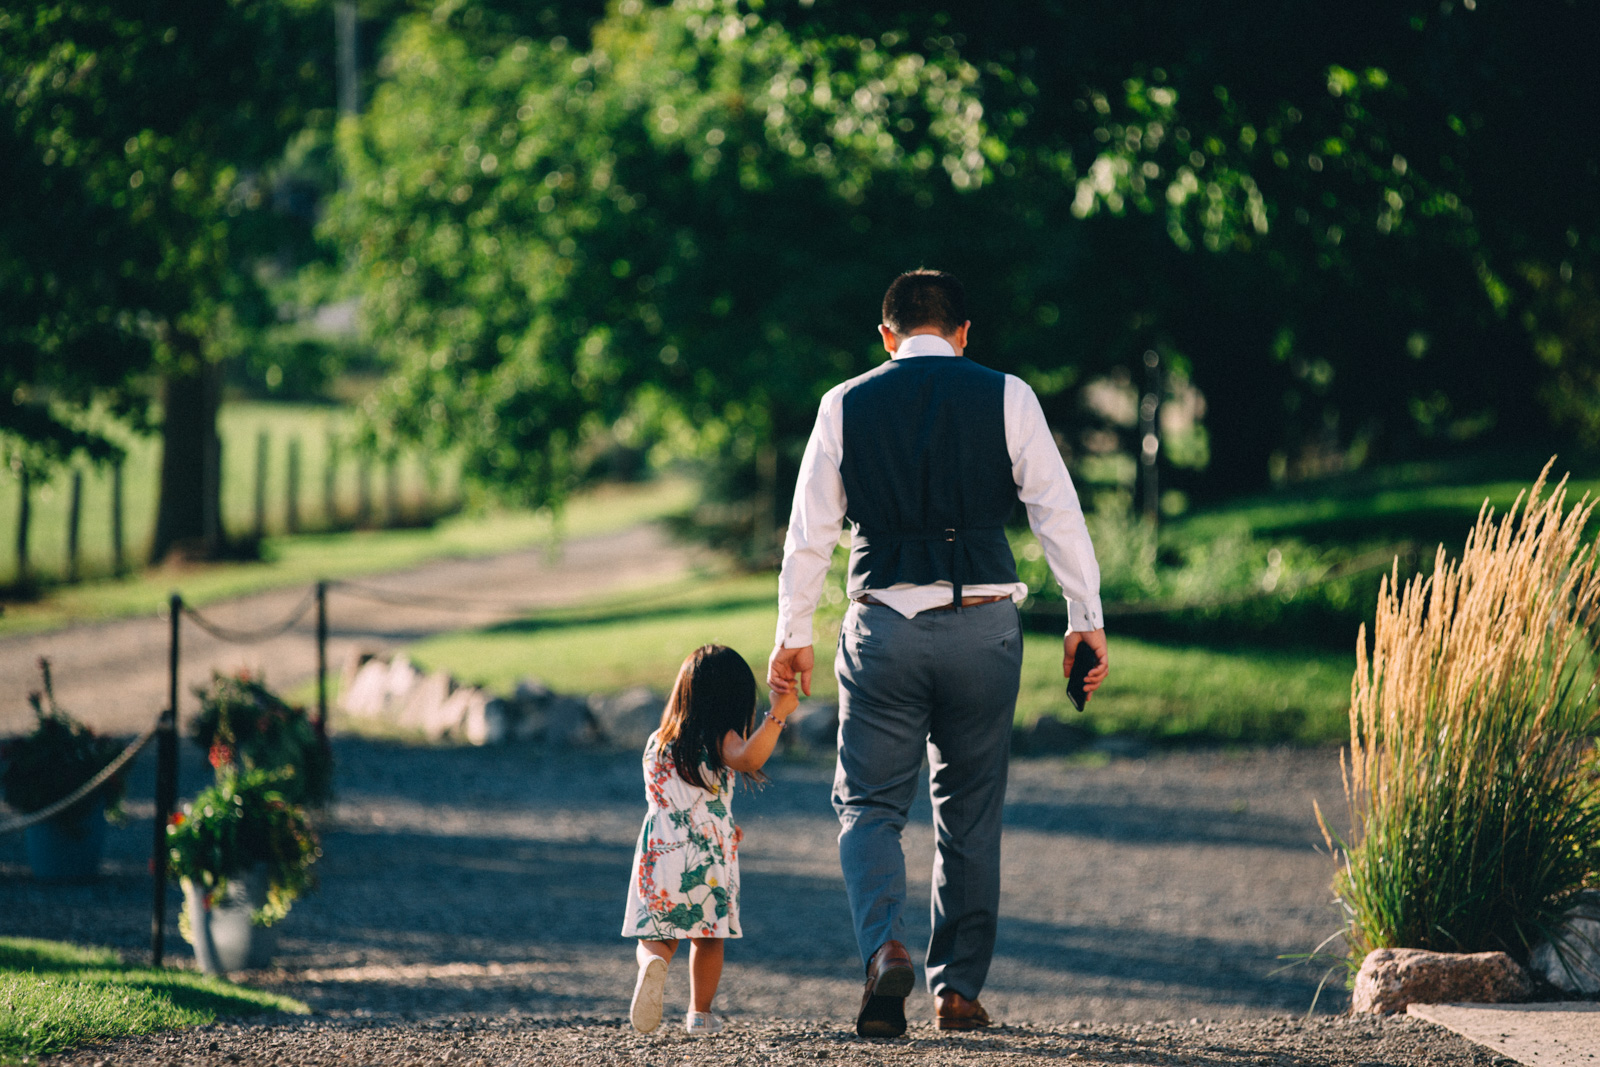 cambium-farms-wedding-photography-by-sam-wong-of-artanis-collective_52